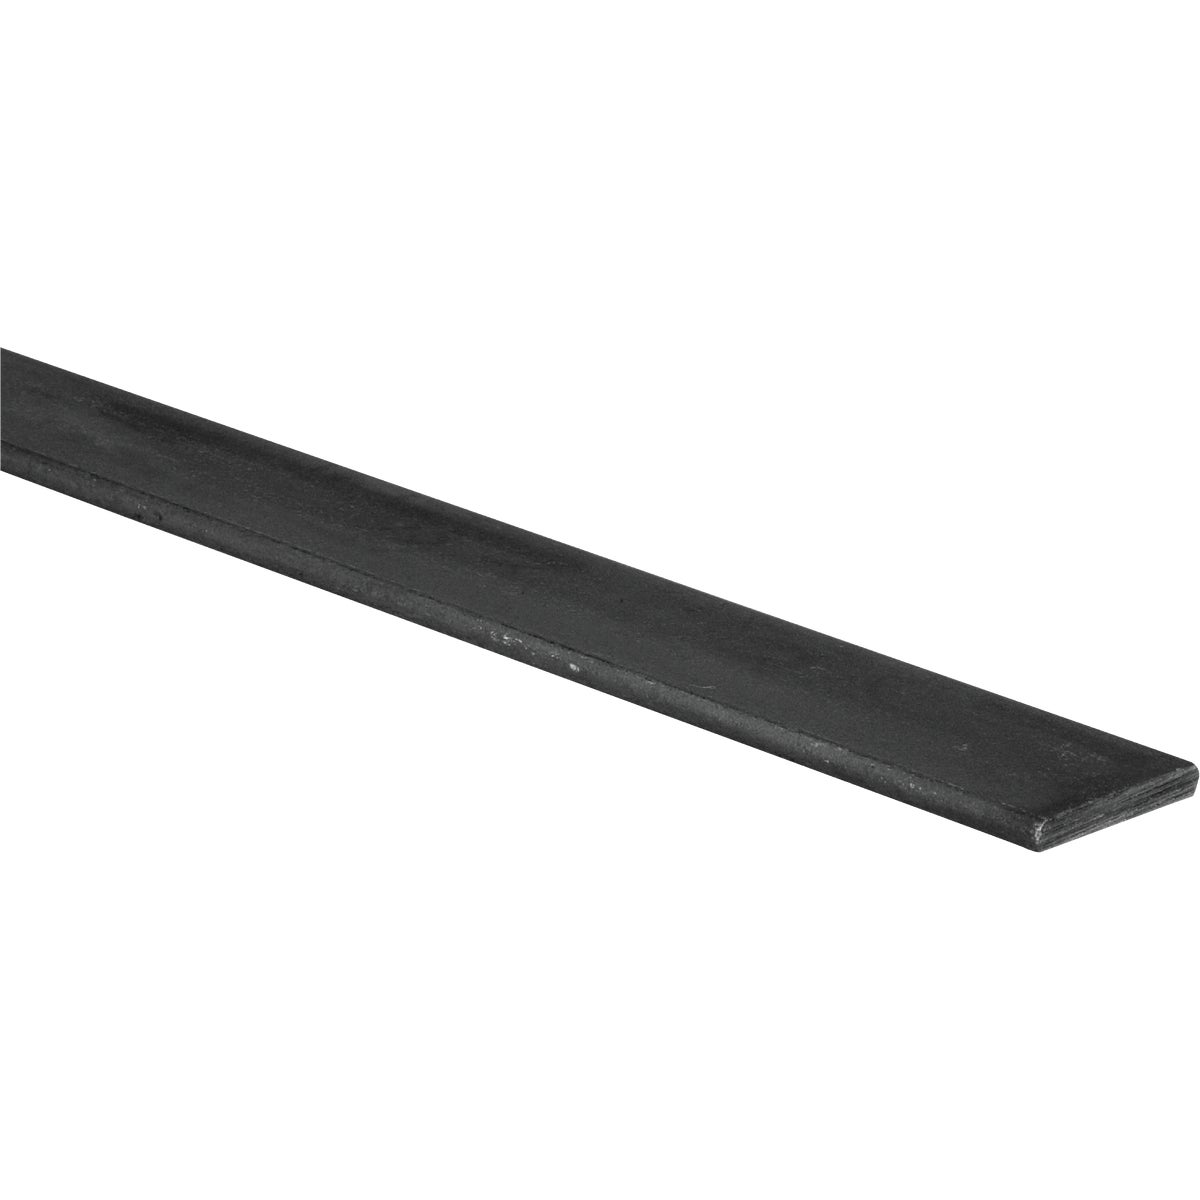 1/8X1X4' HR STL FLAT BAR - N215558 by National Mfg Co